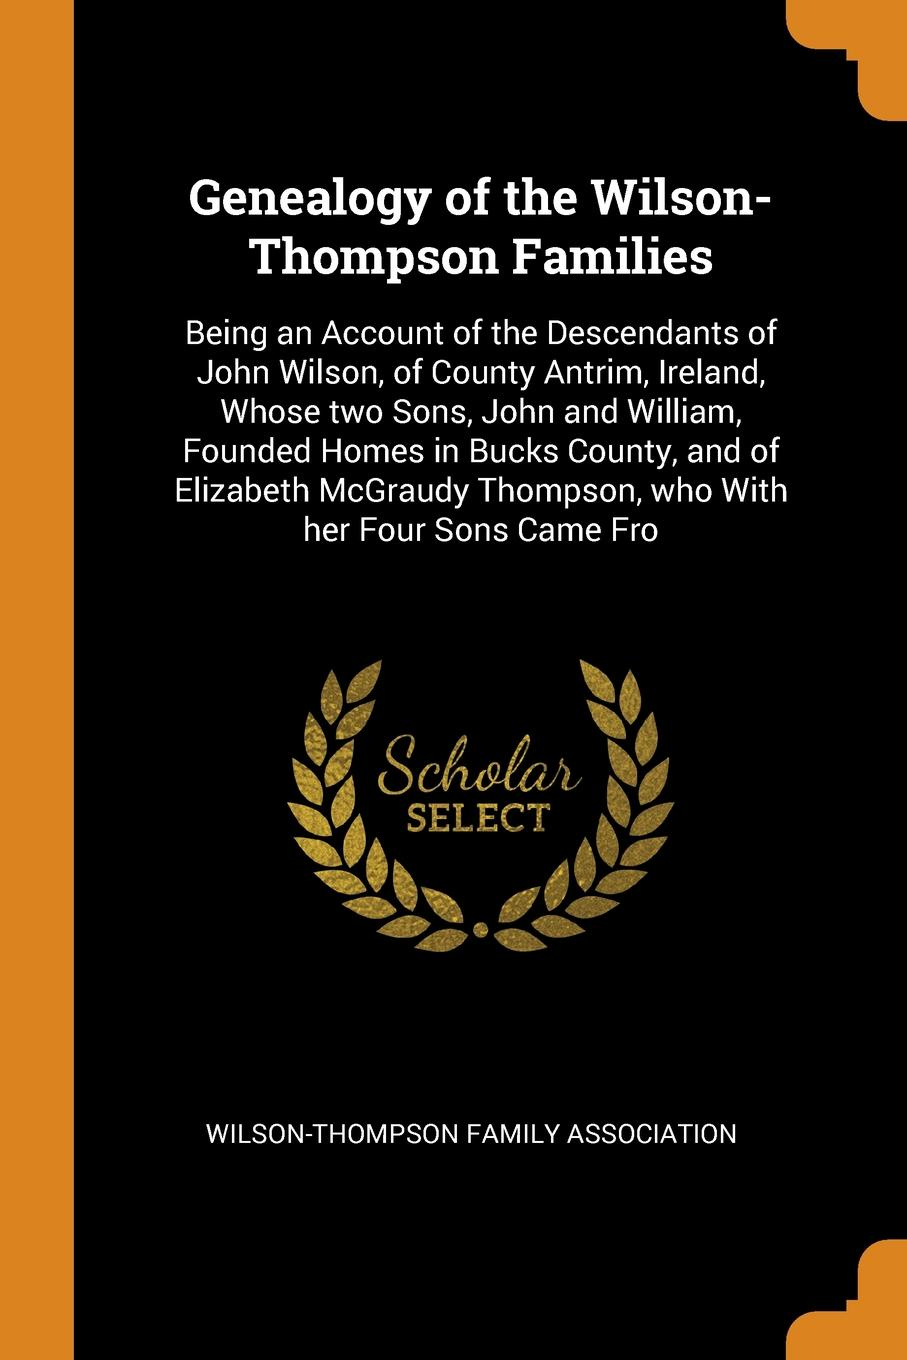 Genealogy of the Wilson-Thompson Families. Being an Account of the Descendants of John Wilson, of County Antrim, Ireland, Whose two Sons, John and William, Founded Homes in Bucks County, and of Elizabeth McGraudy Thompson, who With her Four Sons C... john wilson in faith work and war